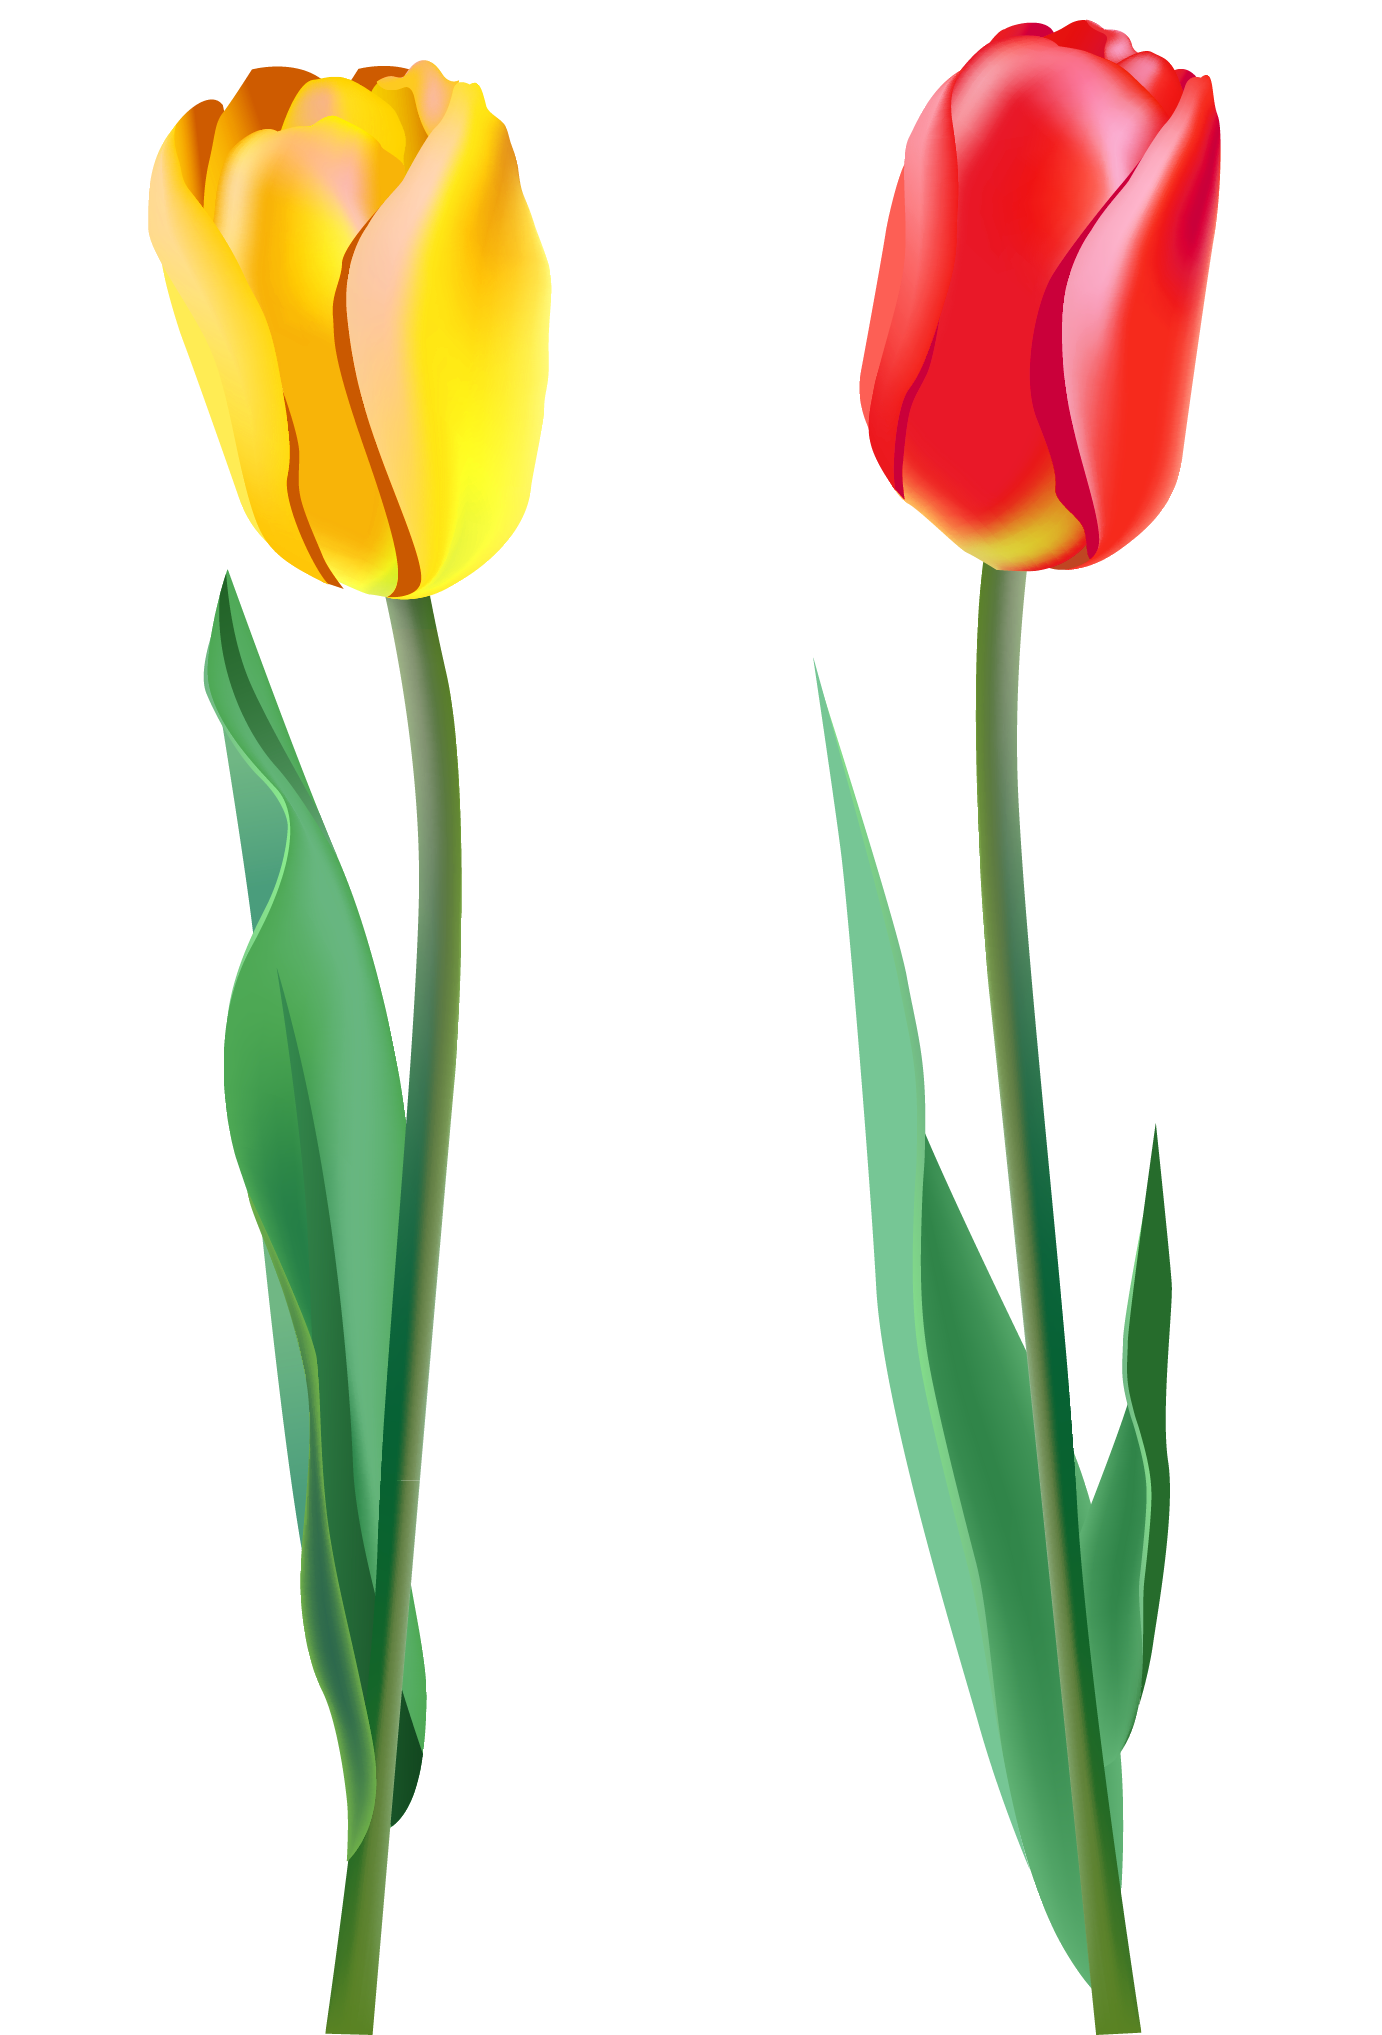 Tulips clipart 10 flower. Spring png gallery yopriceville